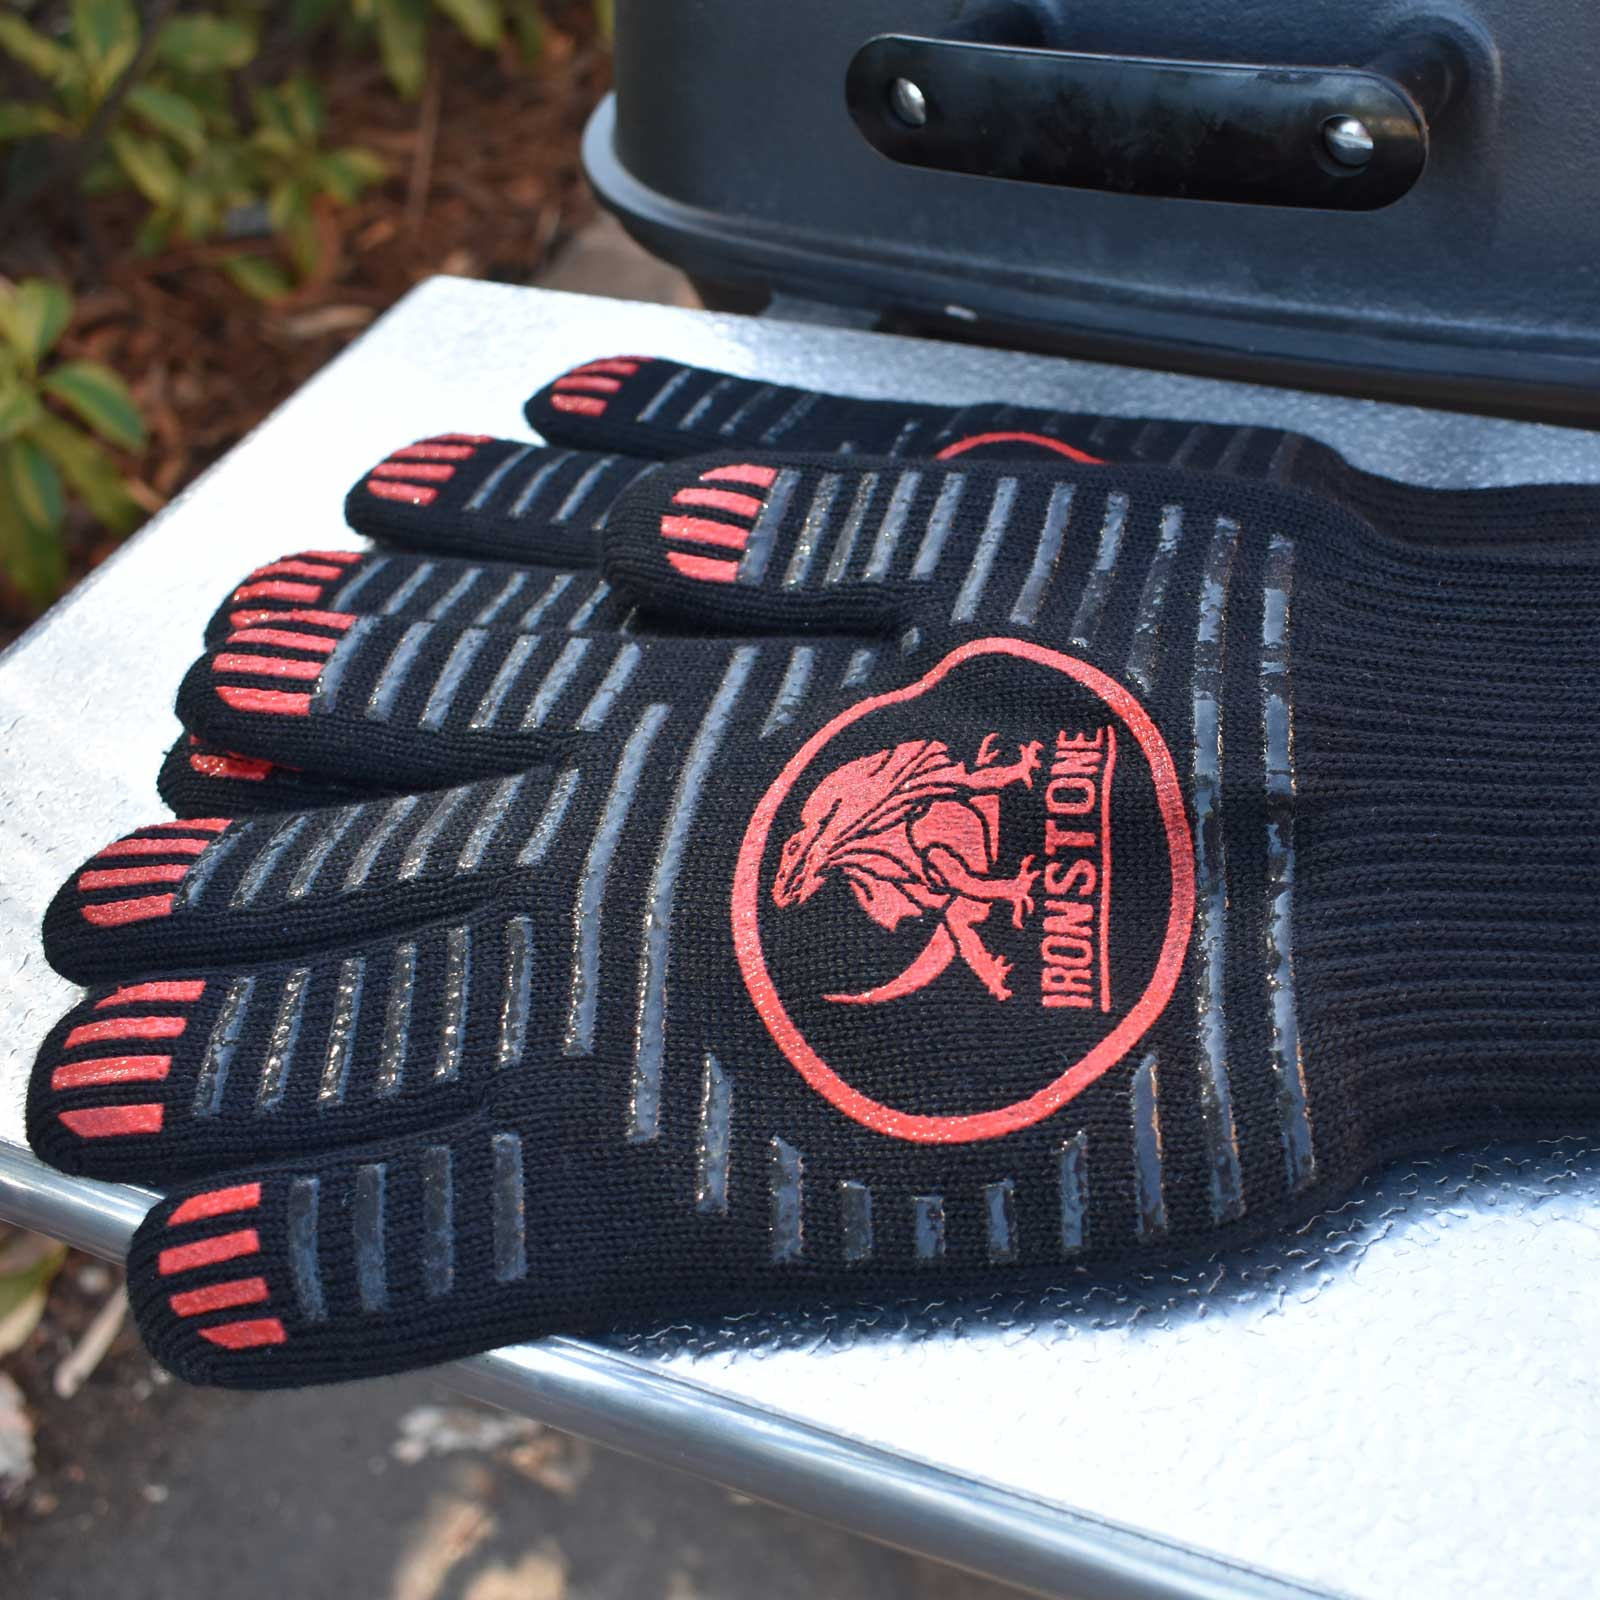 Ironstone-gloves-red3